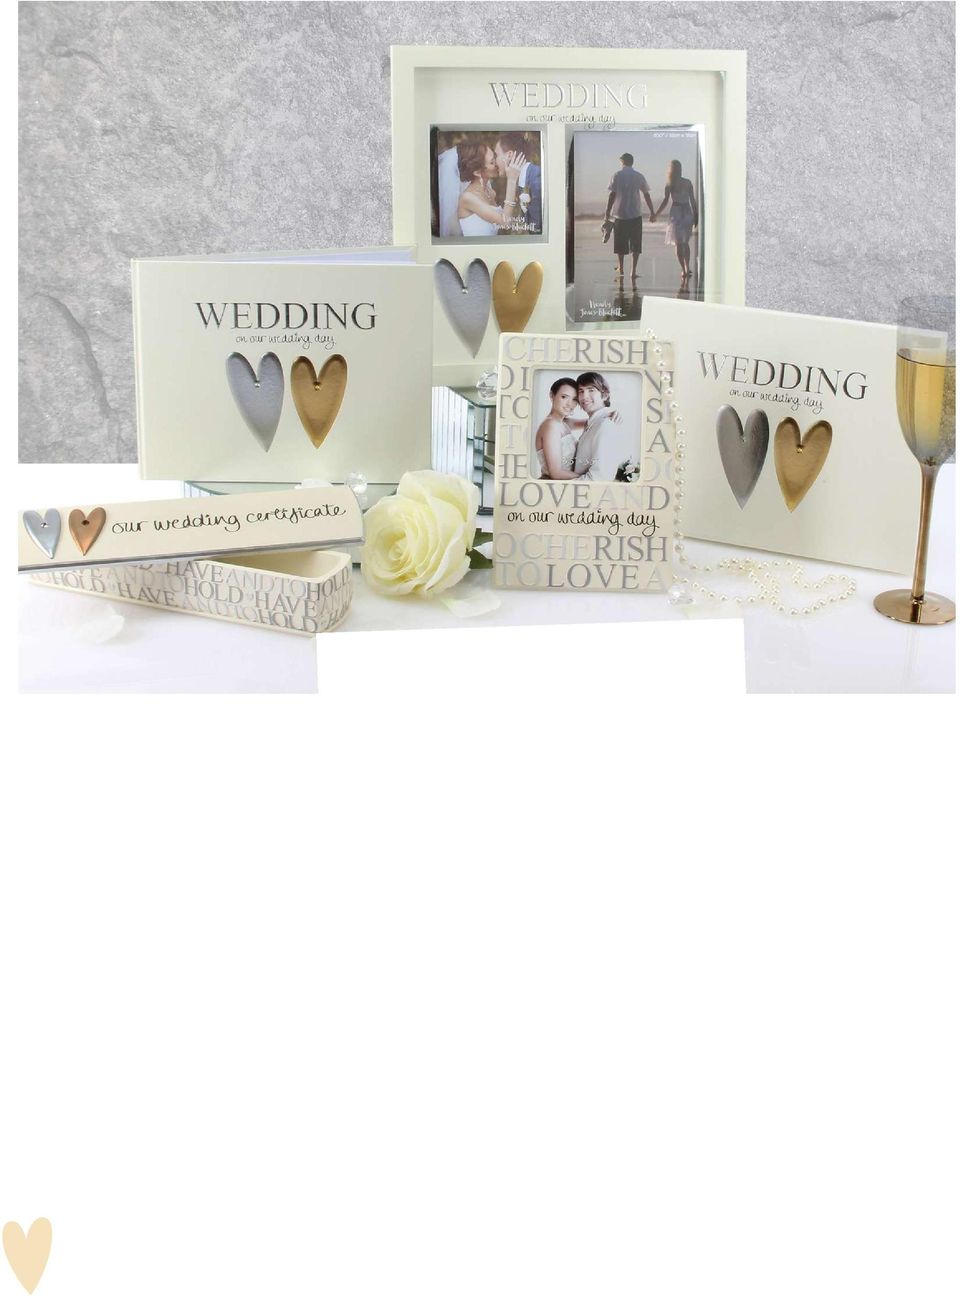 Wedding day double MDF photo frame WJ102WD ctn qty:12 29cm x 31cm x 3cm 4. Our Wedding Day Resin photo frame WJ110 ctn qty:32 3 x 3 photo 19cm x 14cm x 2cm 5.